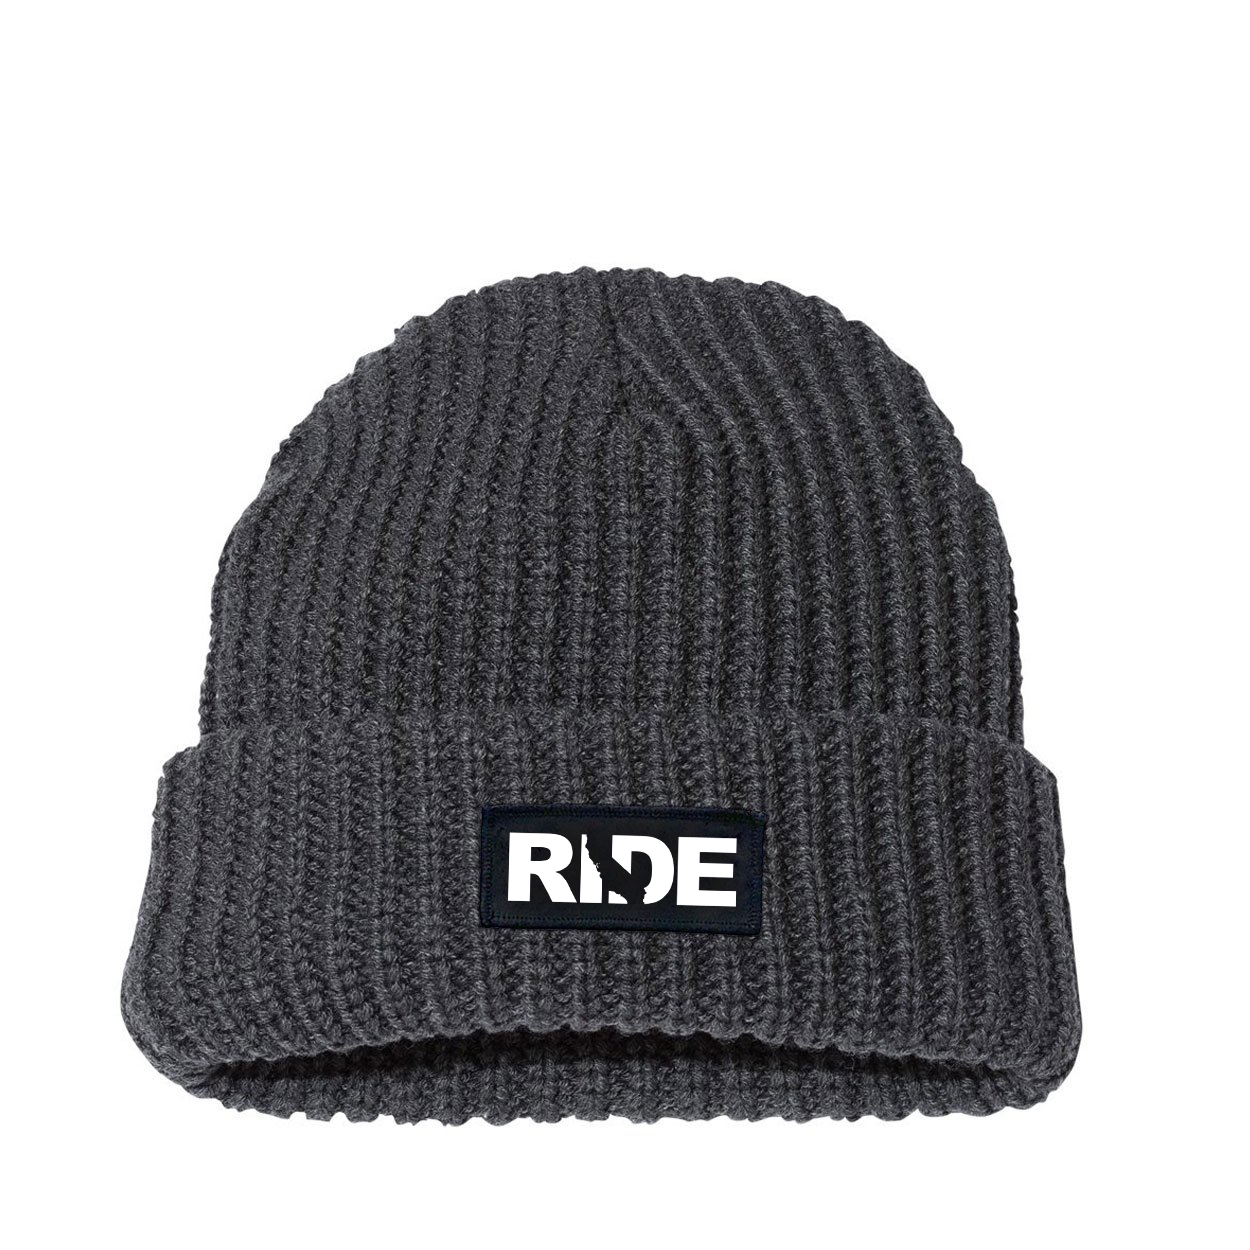 Ride California Night Out Woven Patch Roll Up Jumbo Chunky Knit Beanie Charcoal (White Logo)